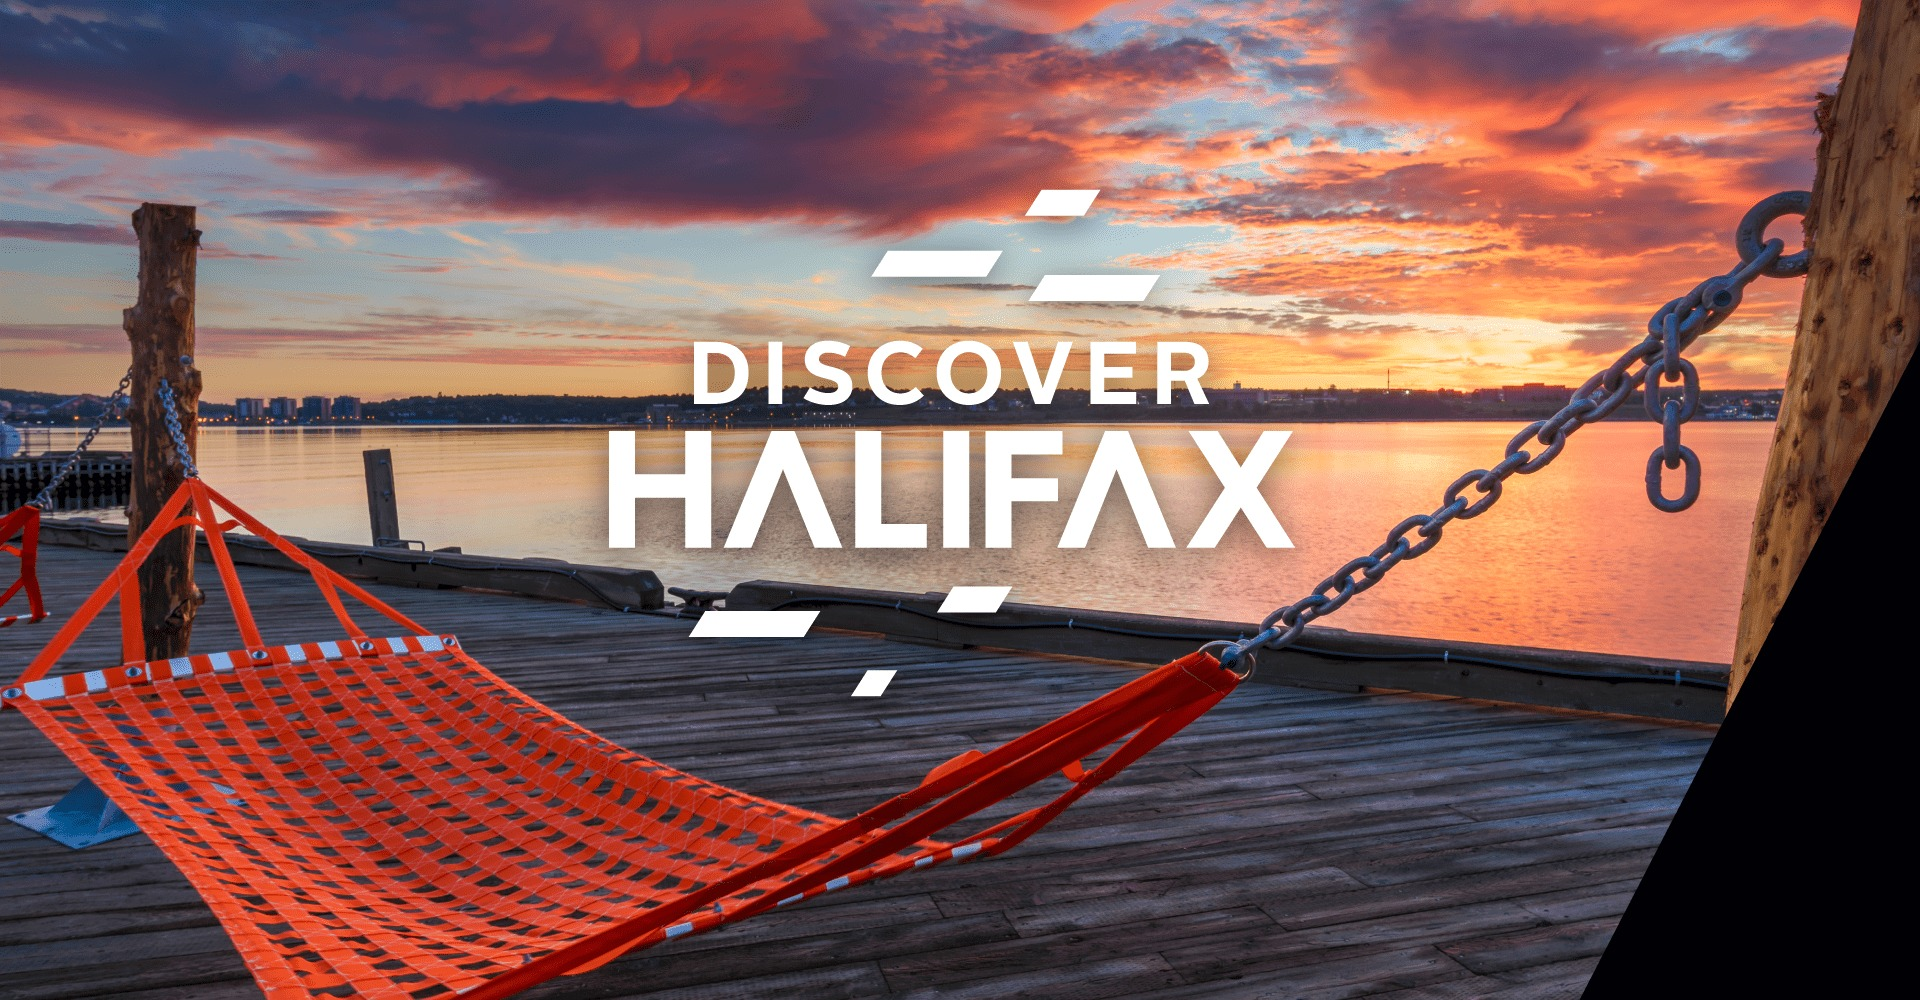 Discover Halifax waterfront hammocks